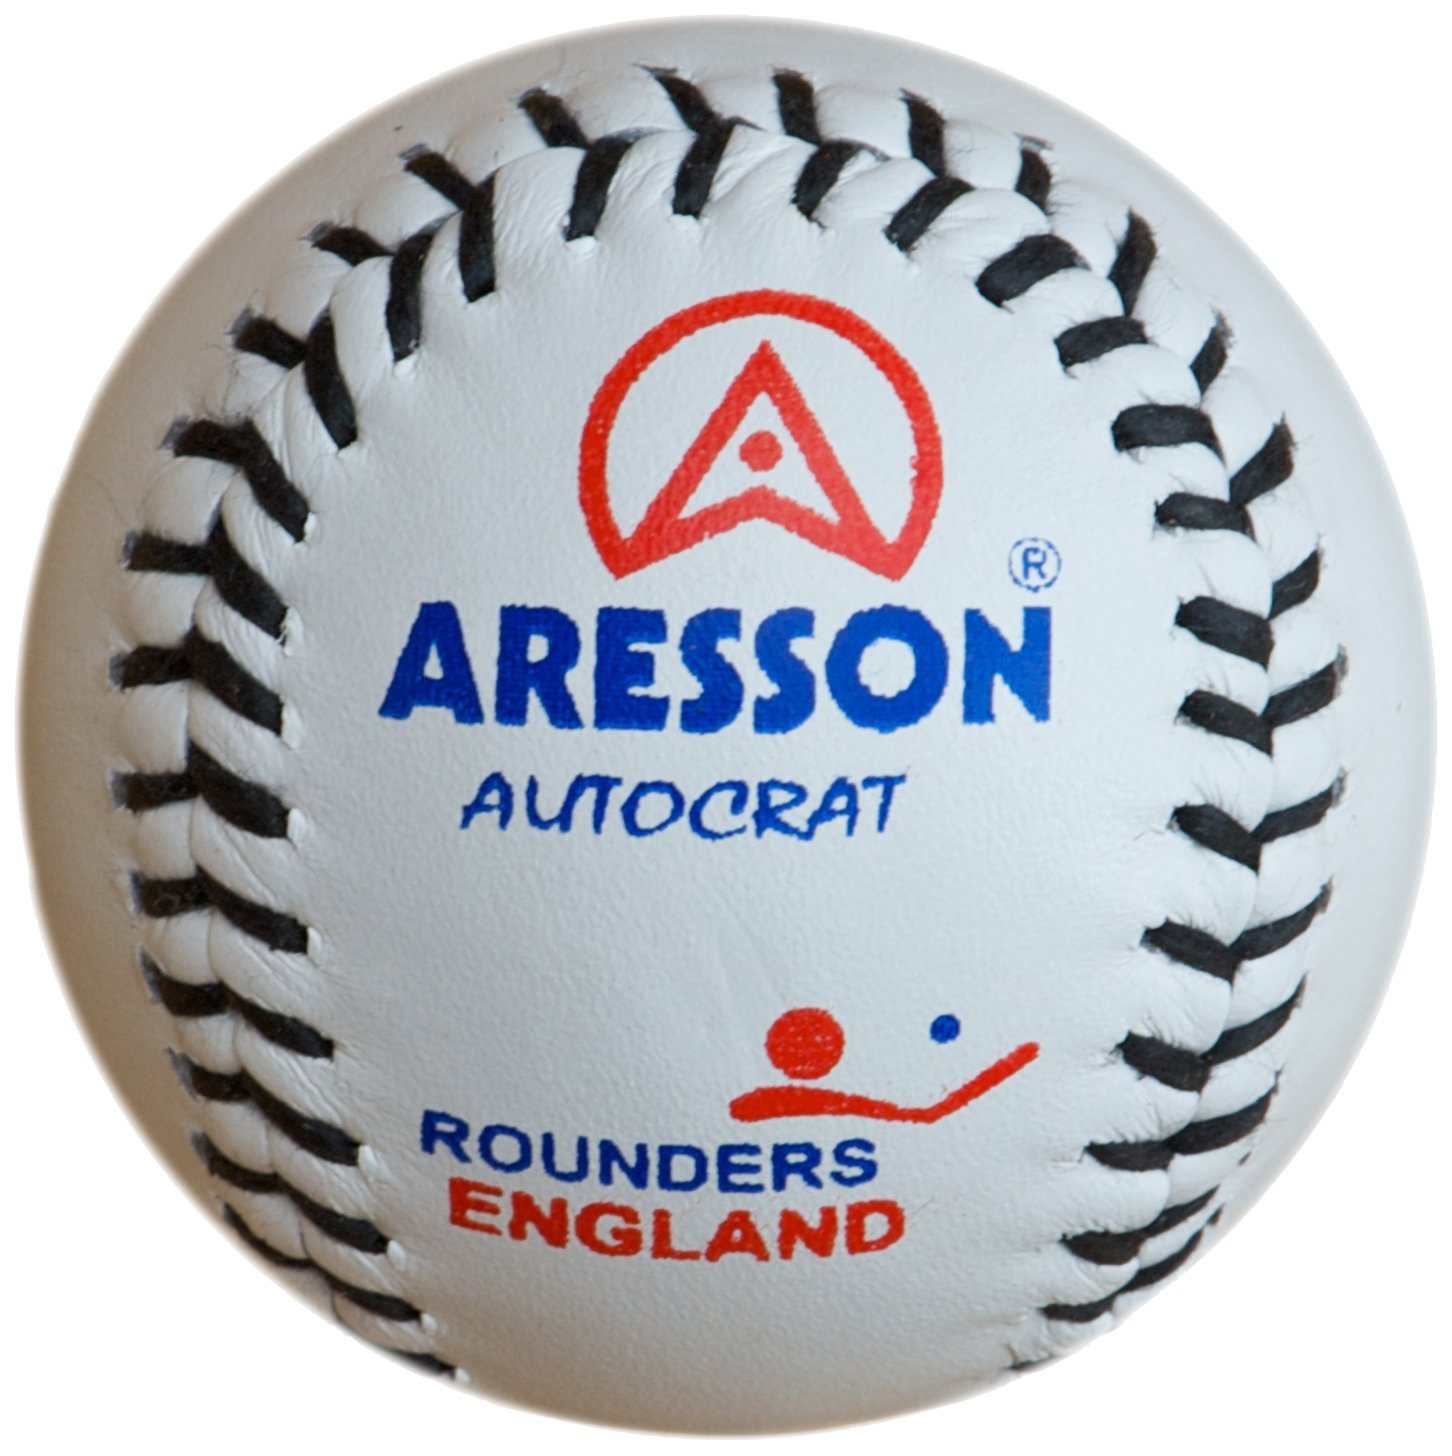 Aresson Autocrat Leather Rounders Ball White 19.5cm SR360